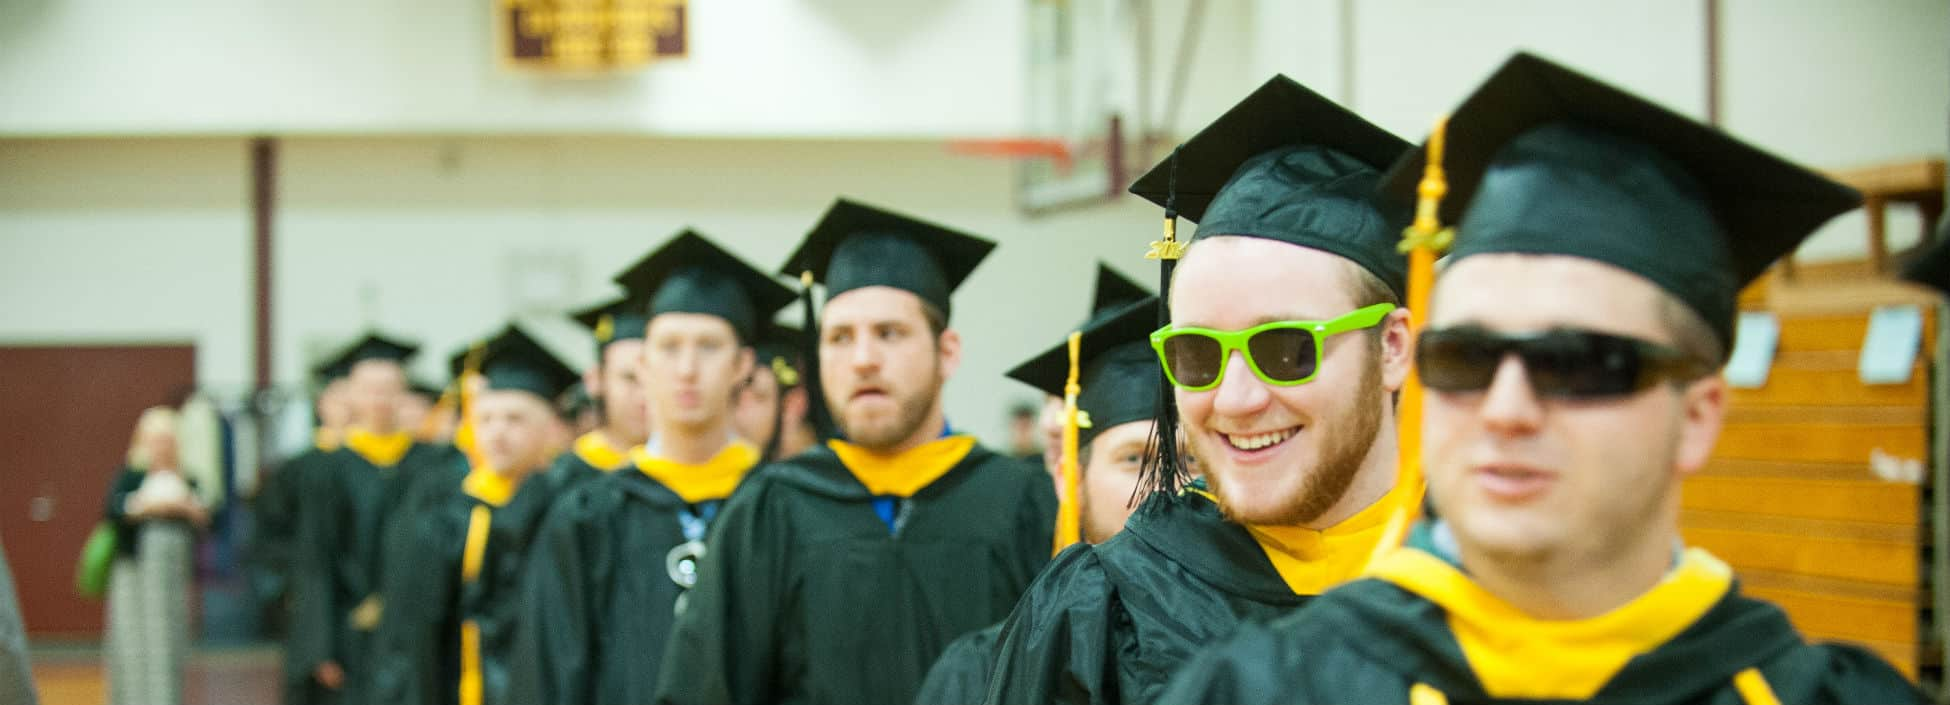 Graduates lining up for commencement, graduation, smiling, sunglasses, happy